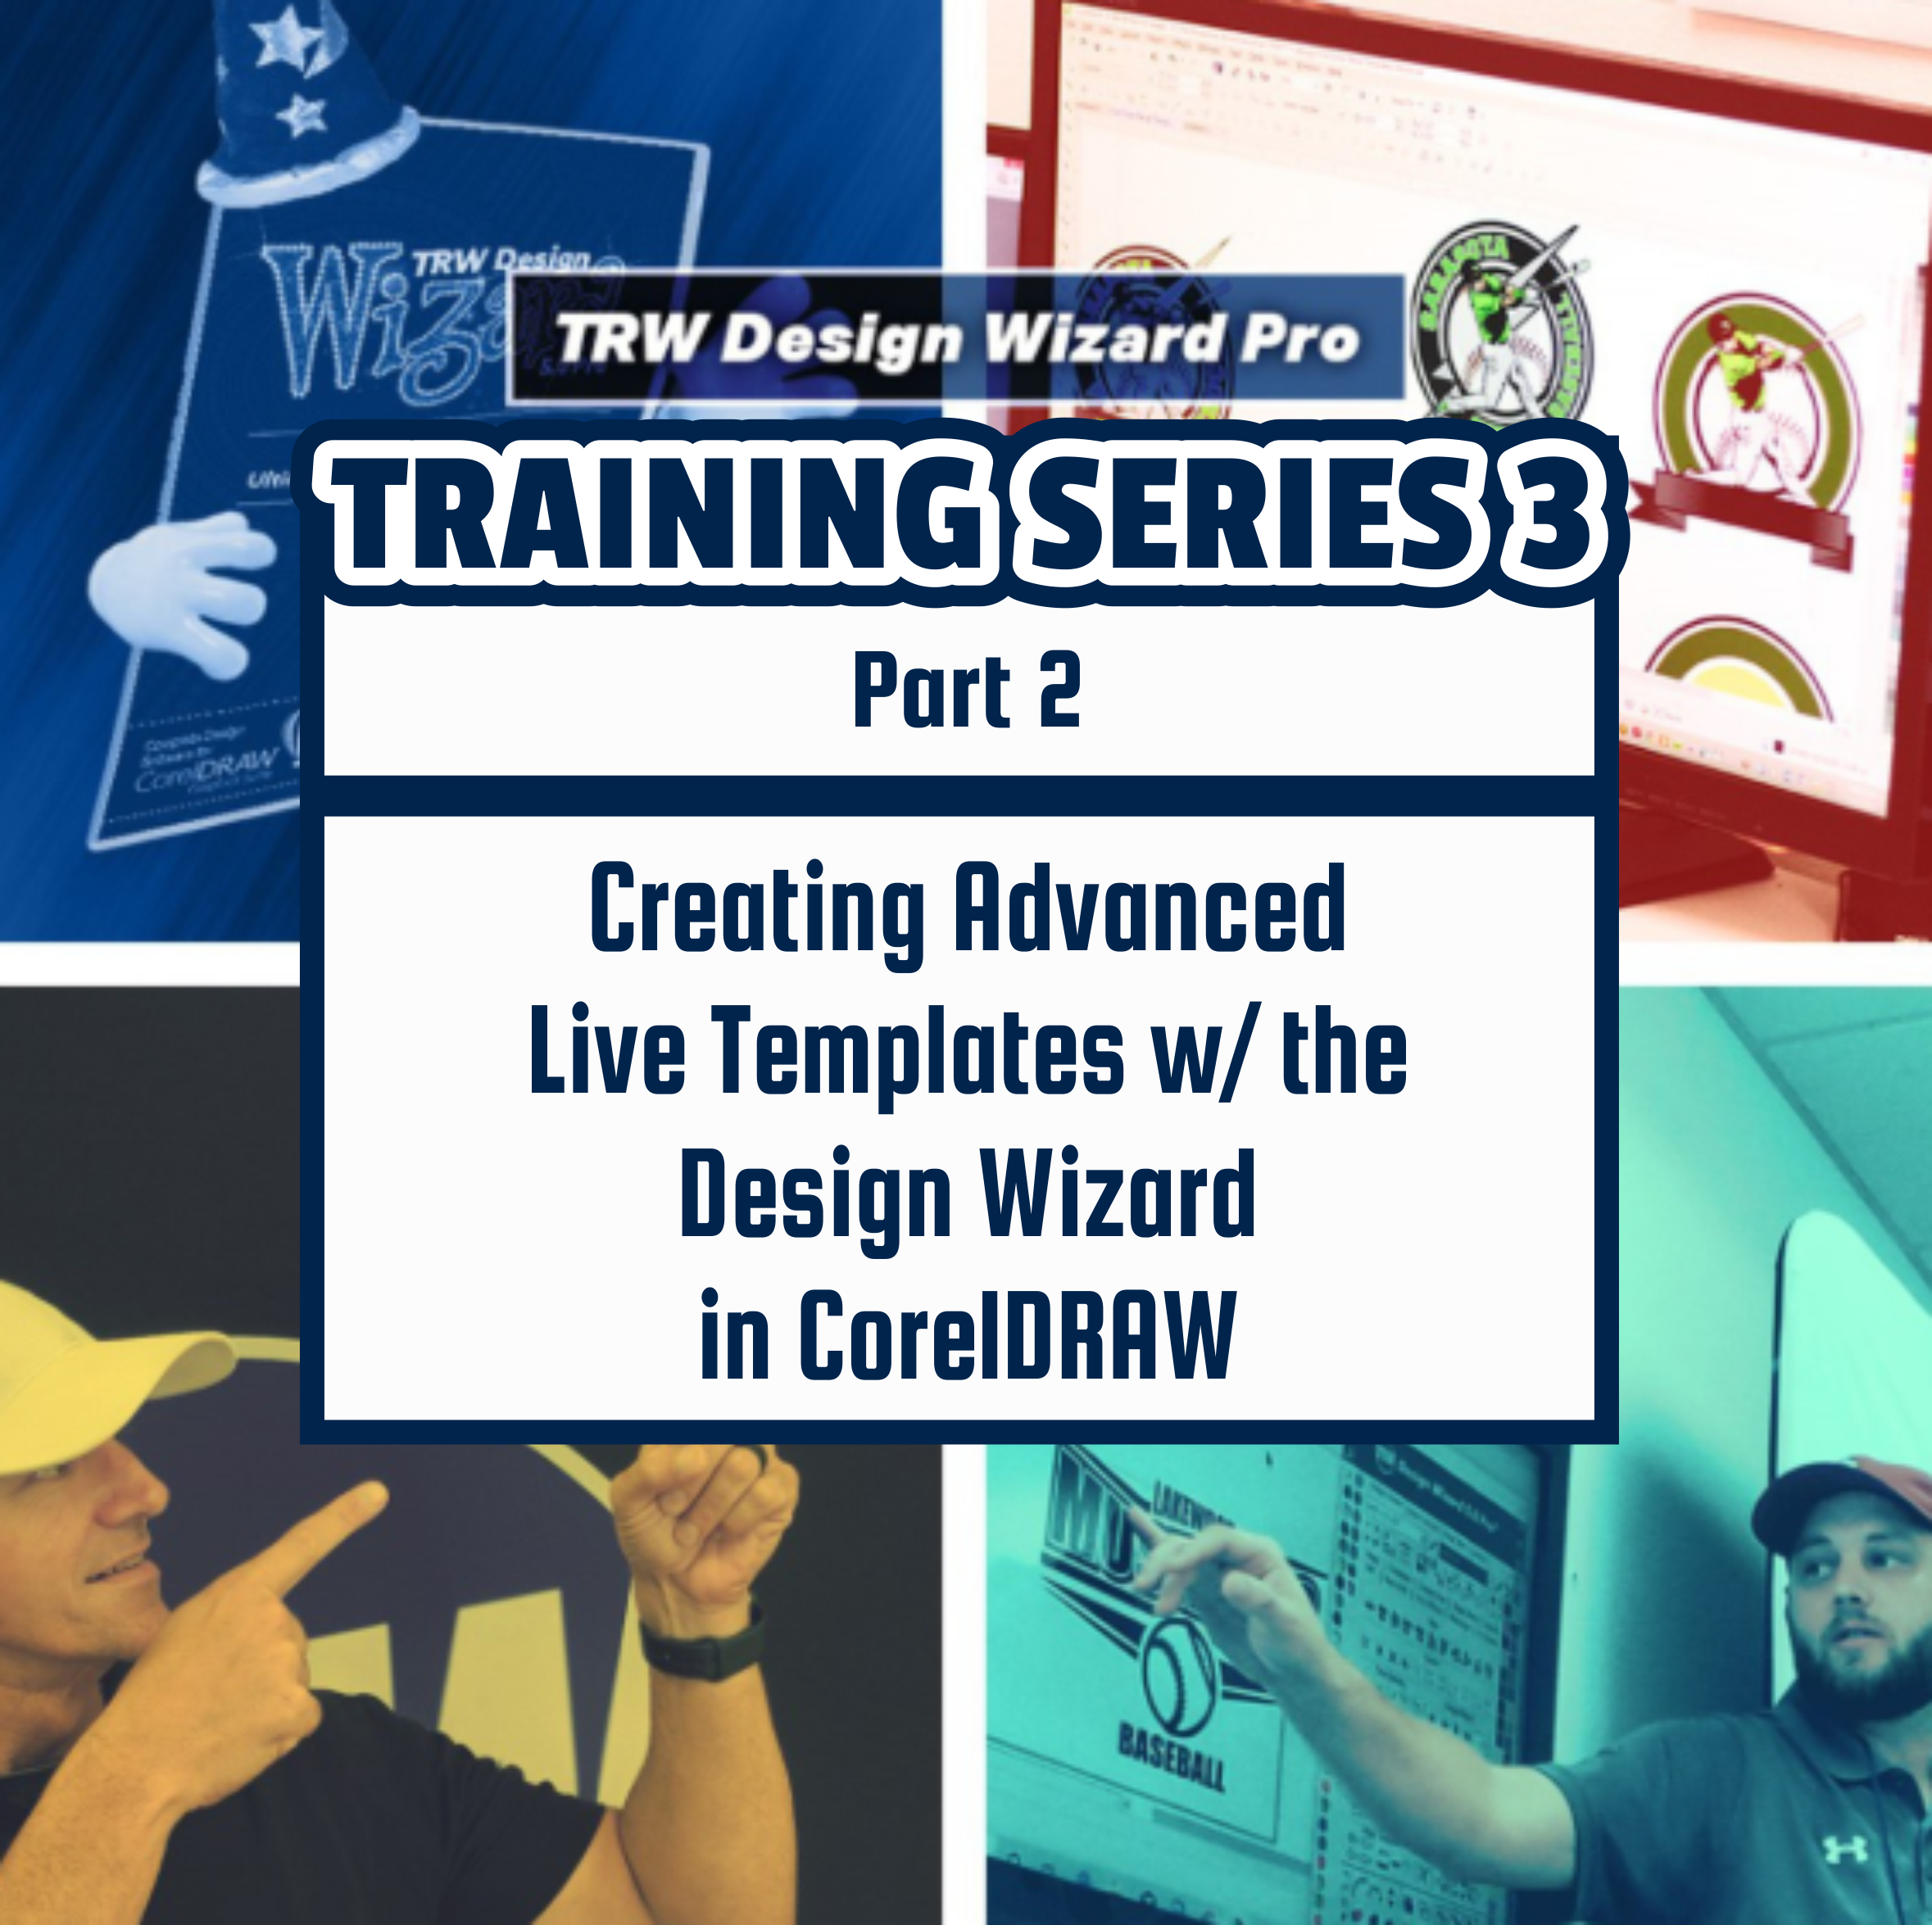 TRW Design Wizard Training Series 3 | Part Two: Creating Advanced Live Templates using the Design Wizard in CorelDRAW| March April 7th 6pm-8pmET